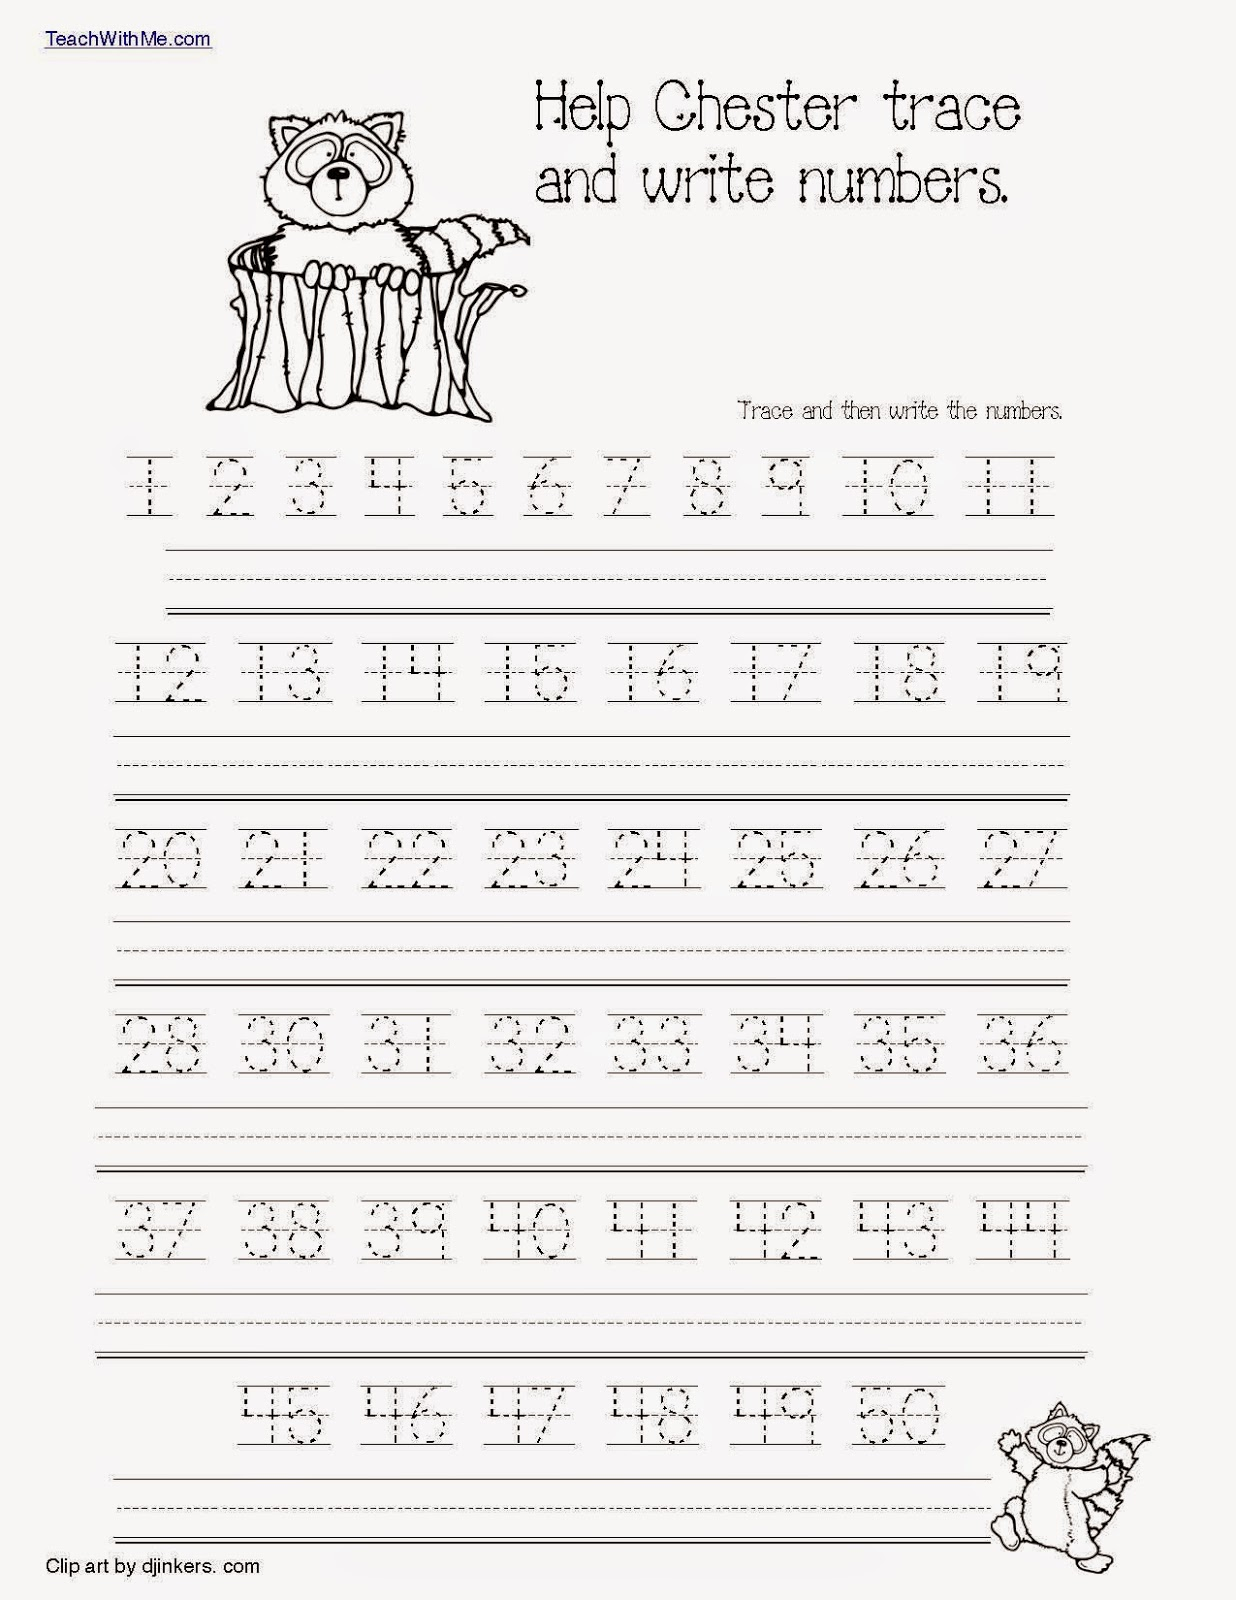 worksheet Alien Periodic Table Worksheet alien periodic table worksheet answers abitlikethis organizing the free printable math